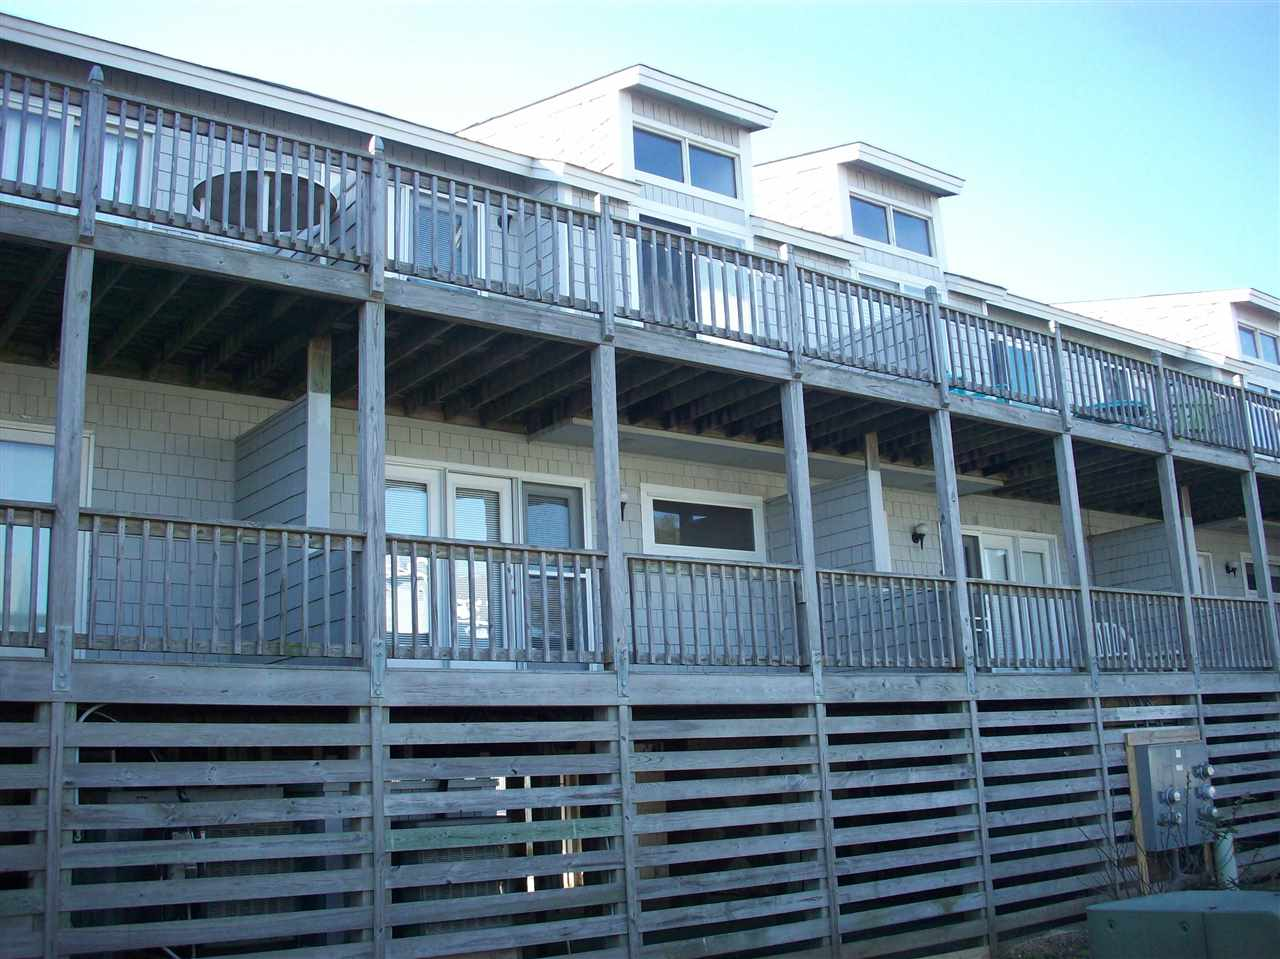 625 Sand Fiddler Circle, Corolla, NC 27927, 3 Bedrooms Bedrooms, ,3 BathroomsBathrooms,Residential,For sale,Sand Fiddler Circle,98260